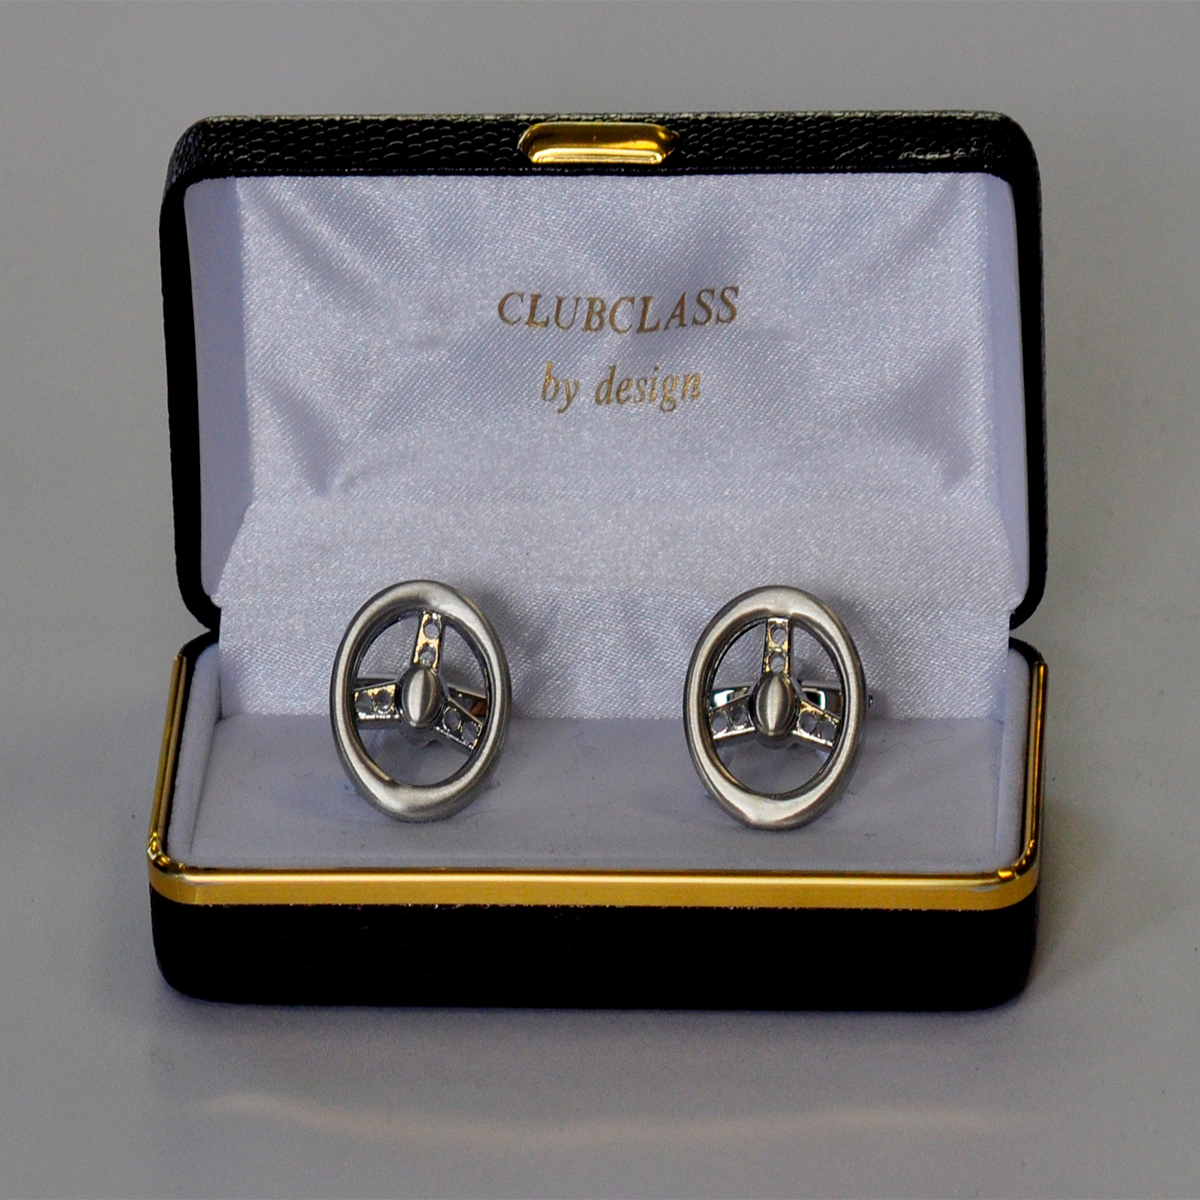 Steering Wheel Cufflinks - €35.00